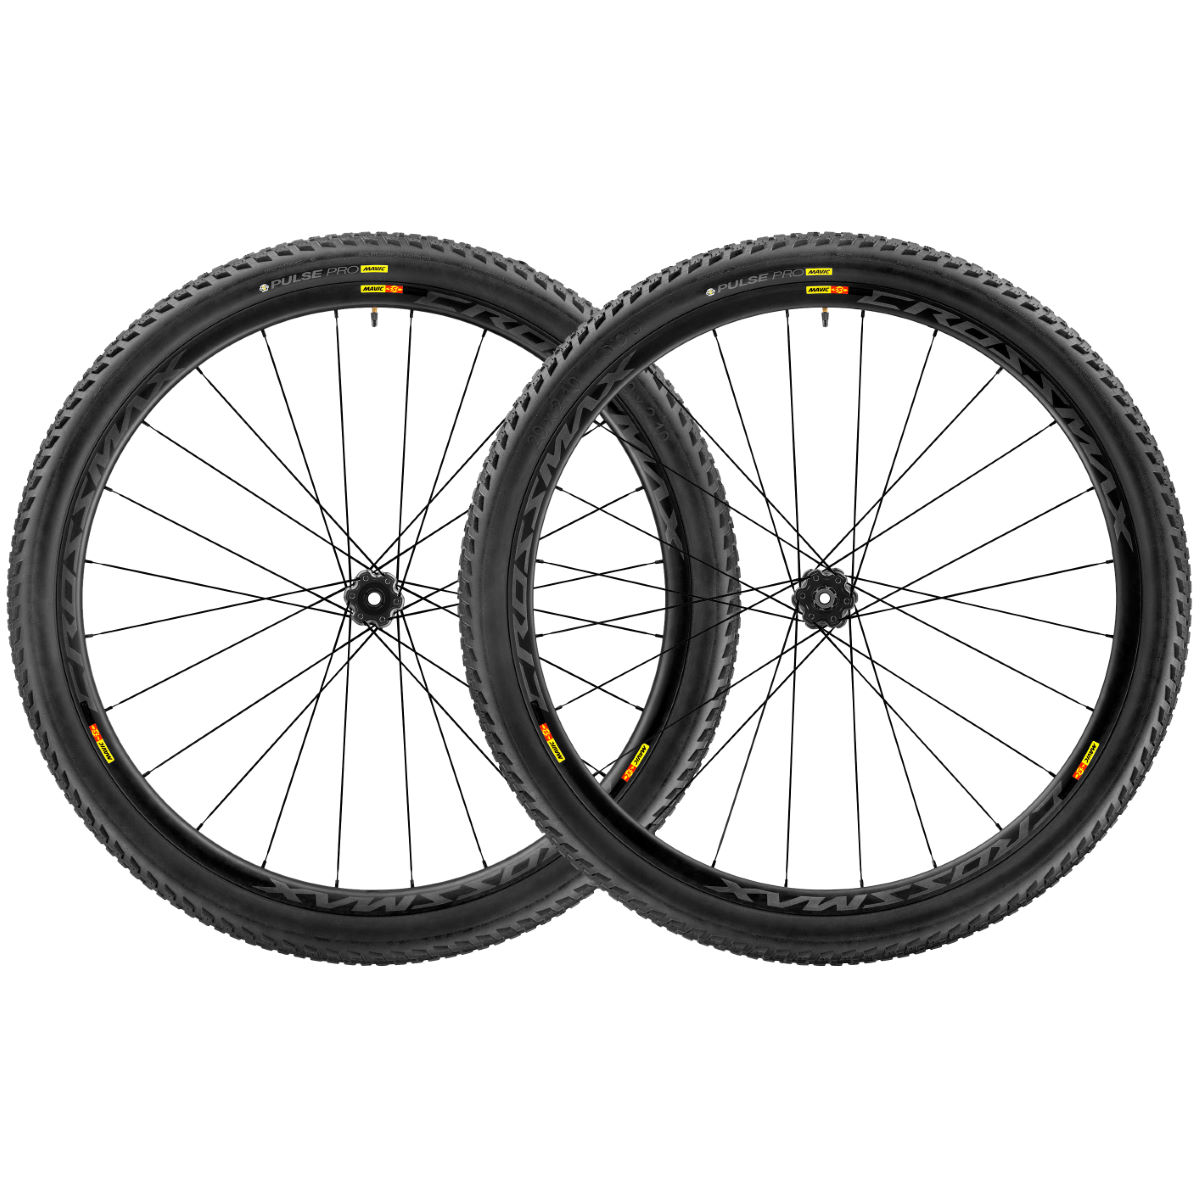 "Wheel set Mavic Crossmax Pro Carbon 27,5 ""(WTS, XD) - Competition wheels"